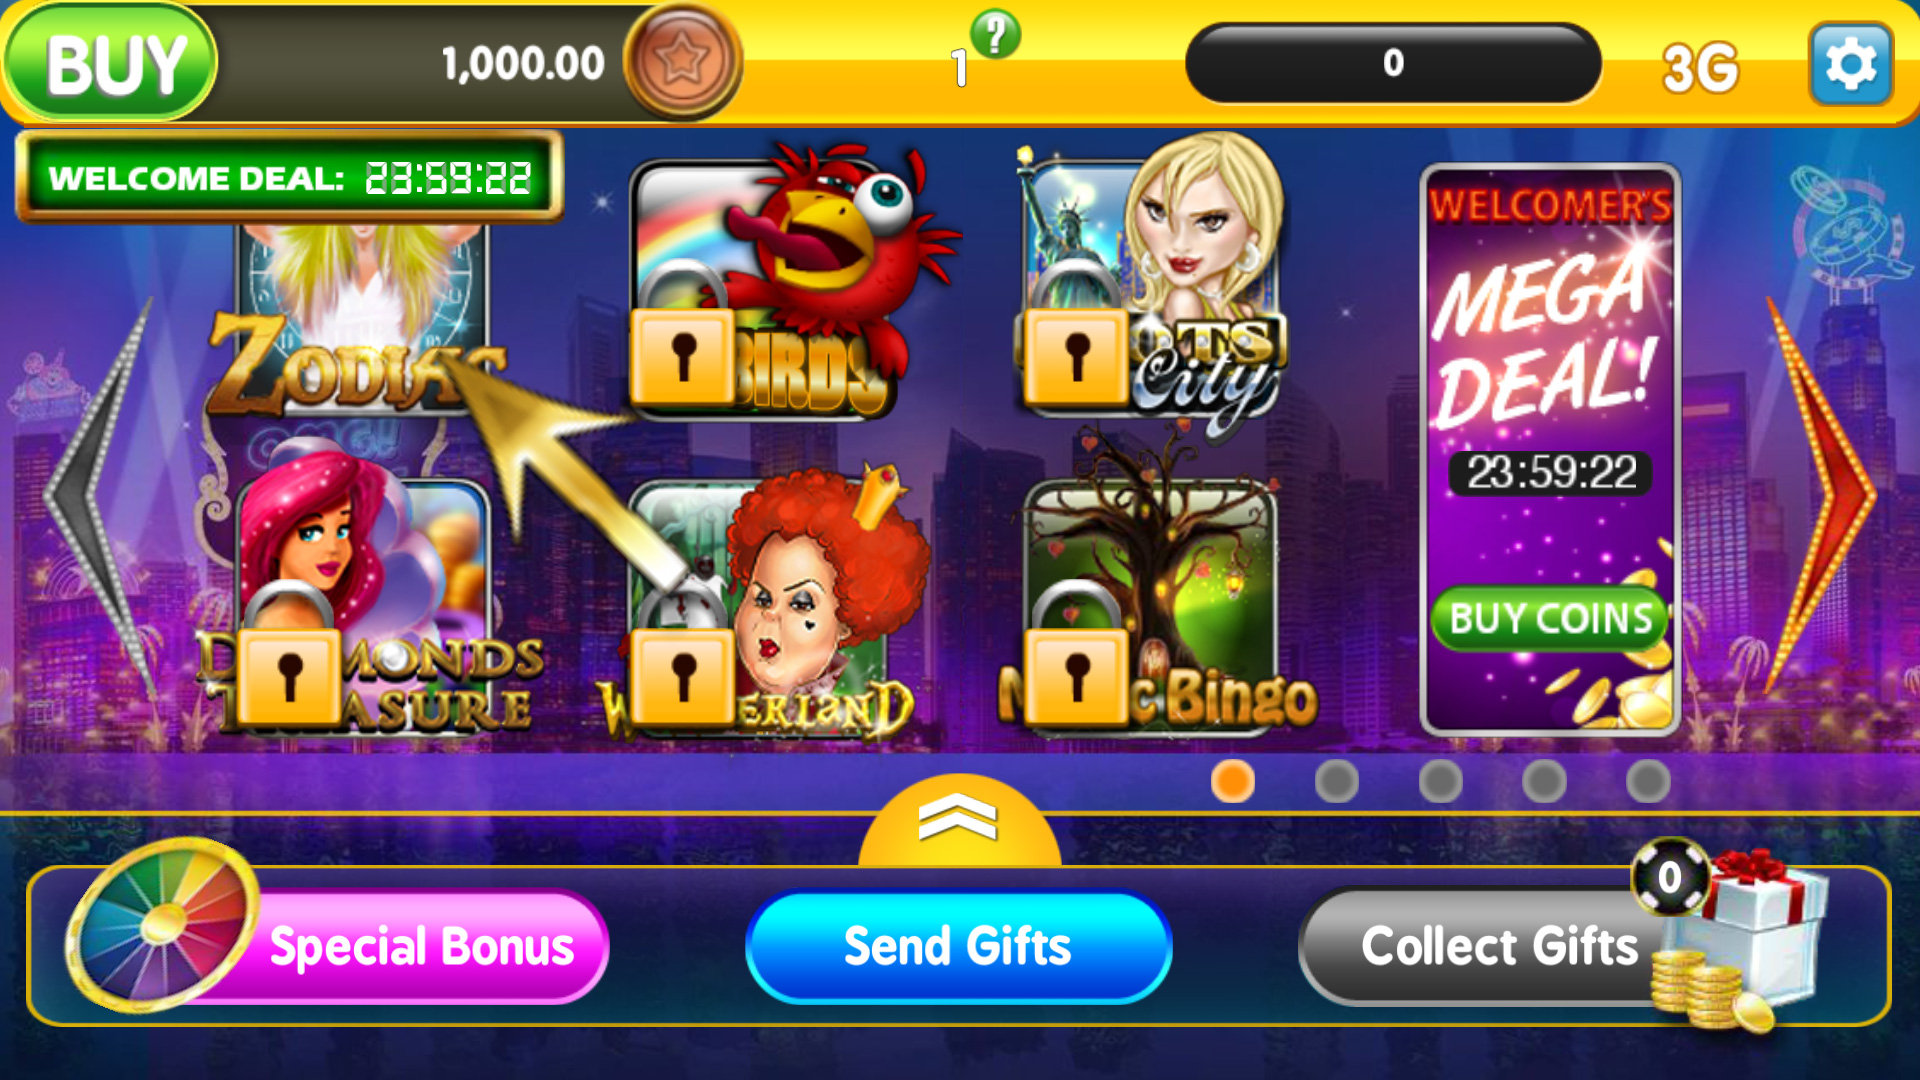 Yebo casino reviews